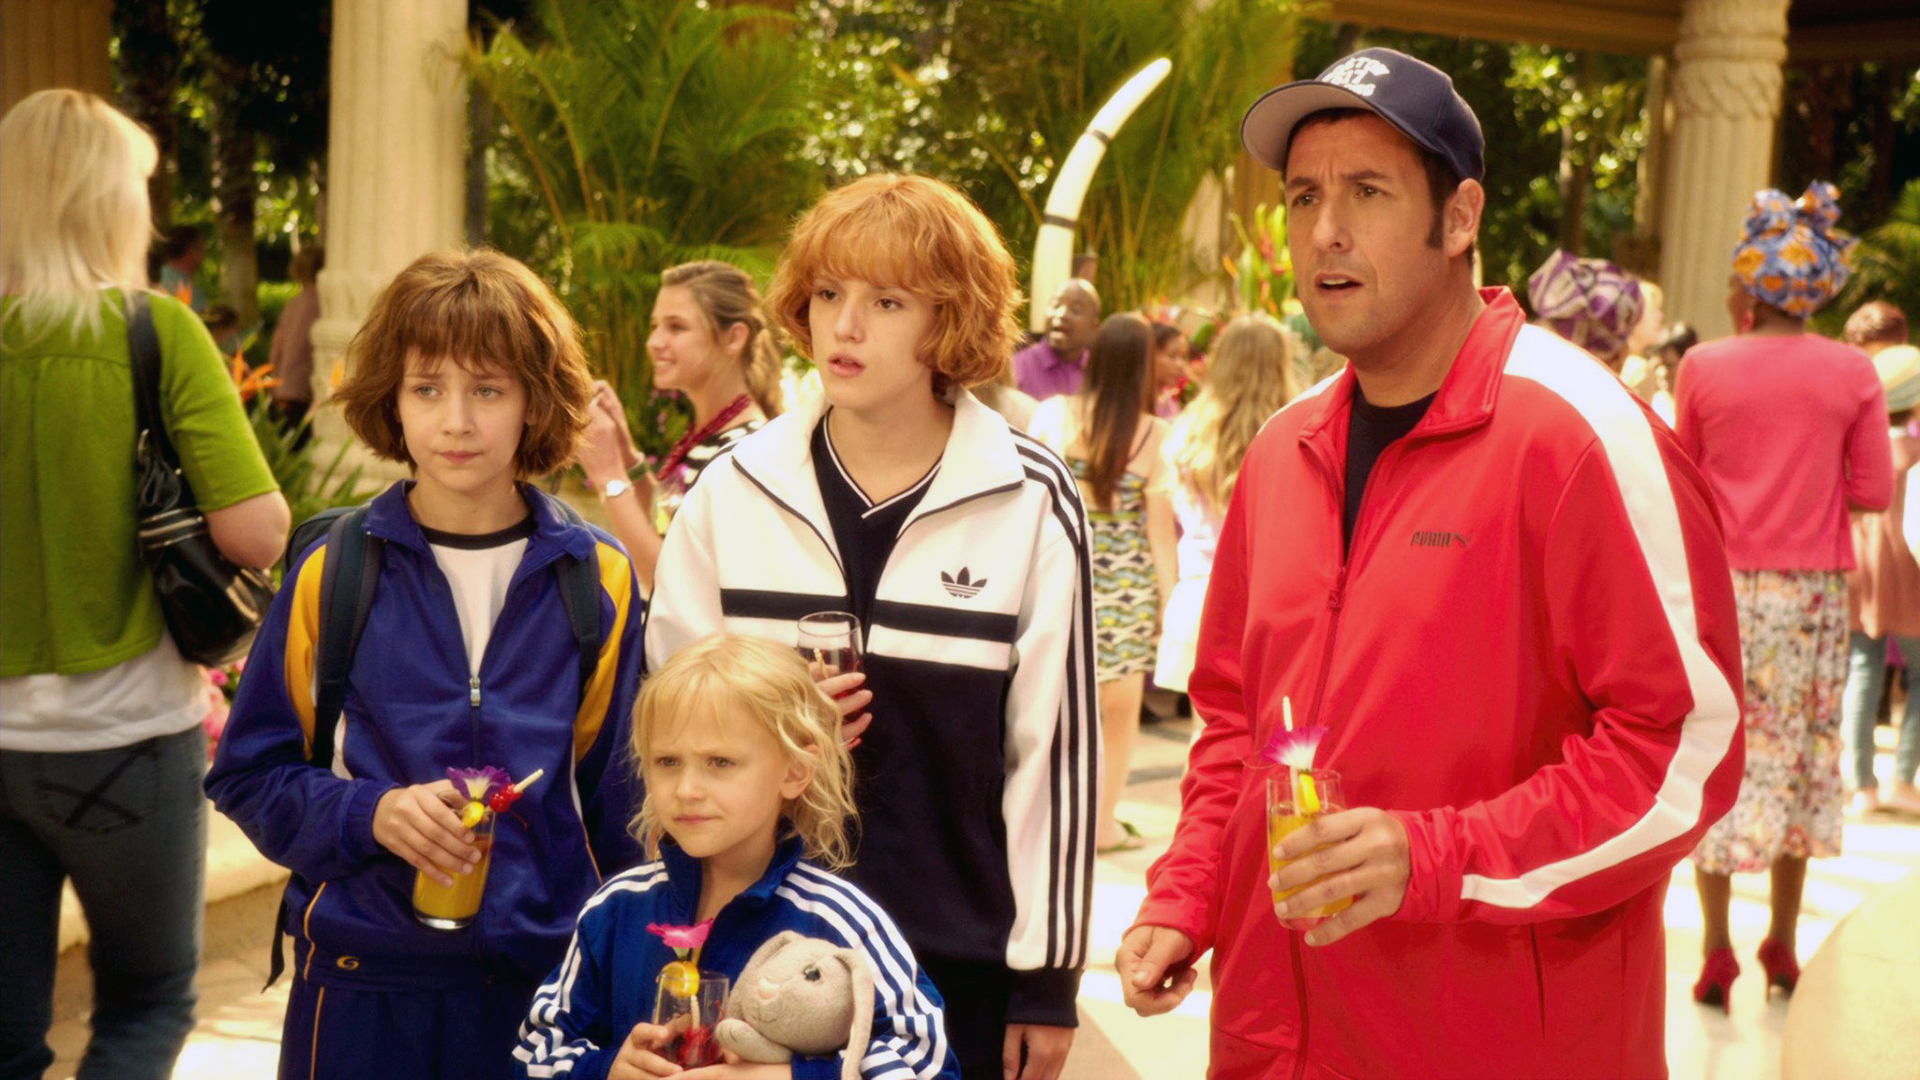 'Blended': It's actually not that bad – The Movie Clubbers